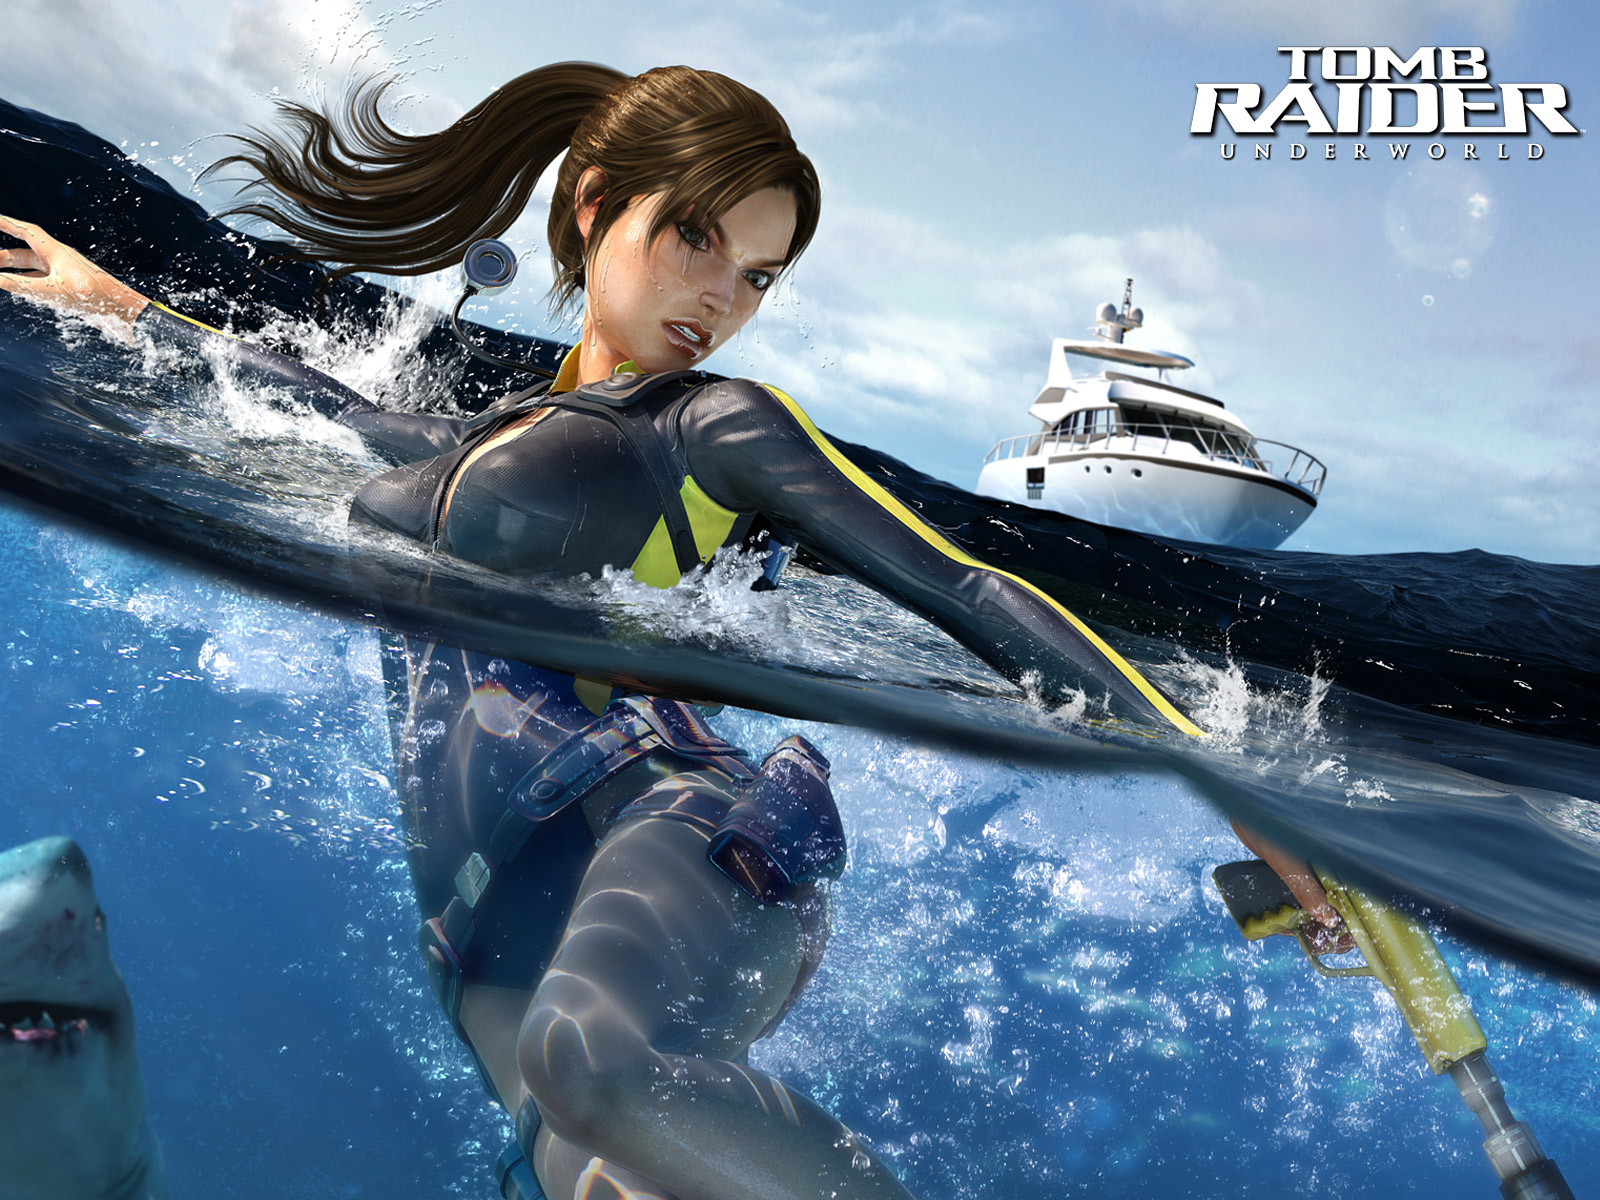 Tomb Raider Underworld 2